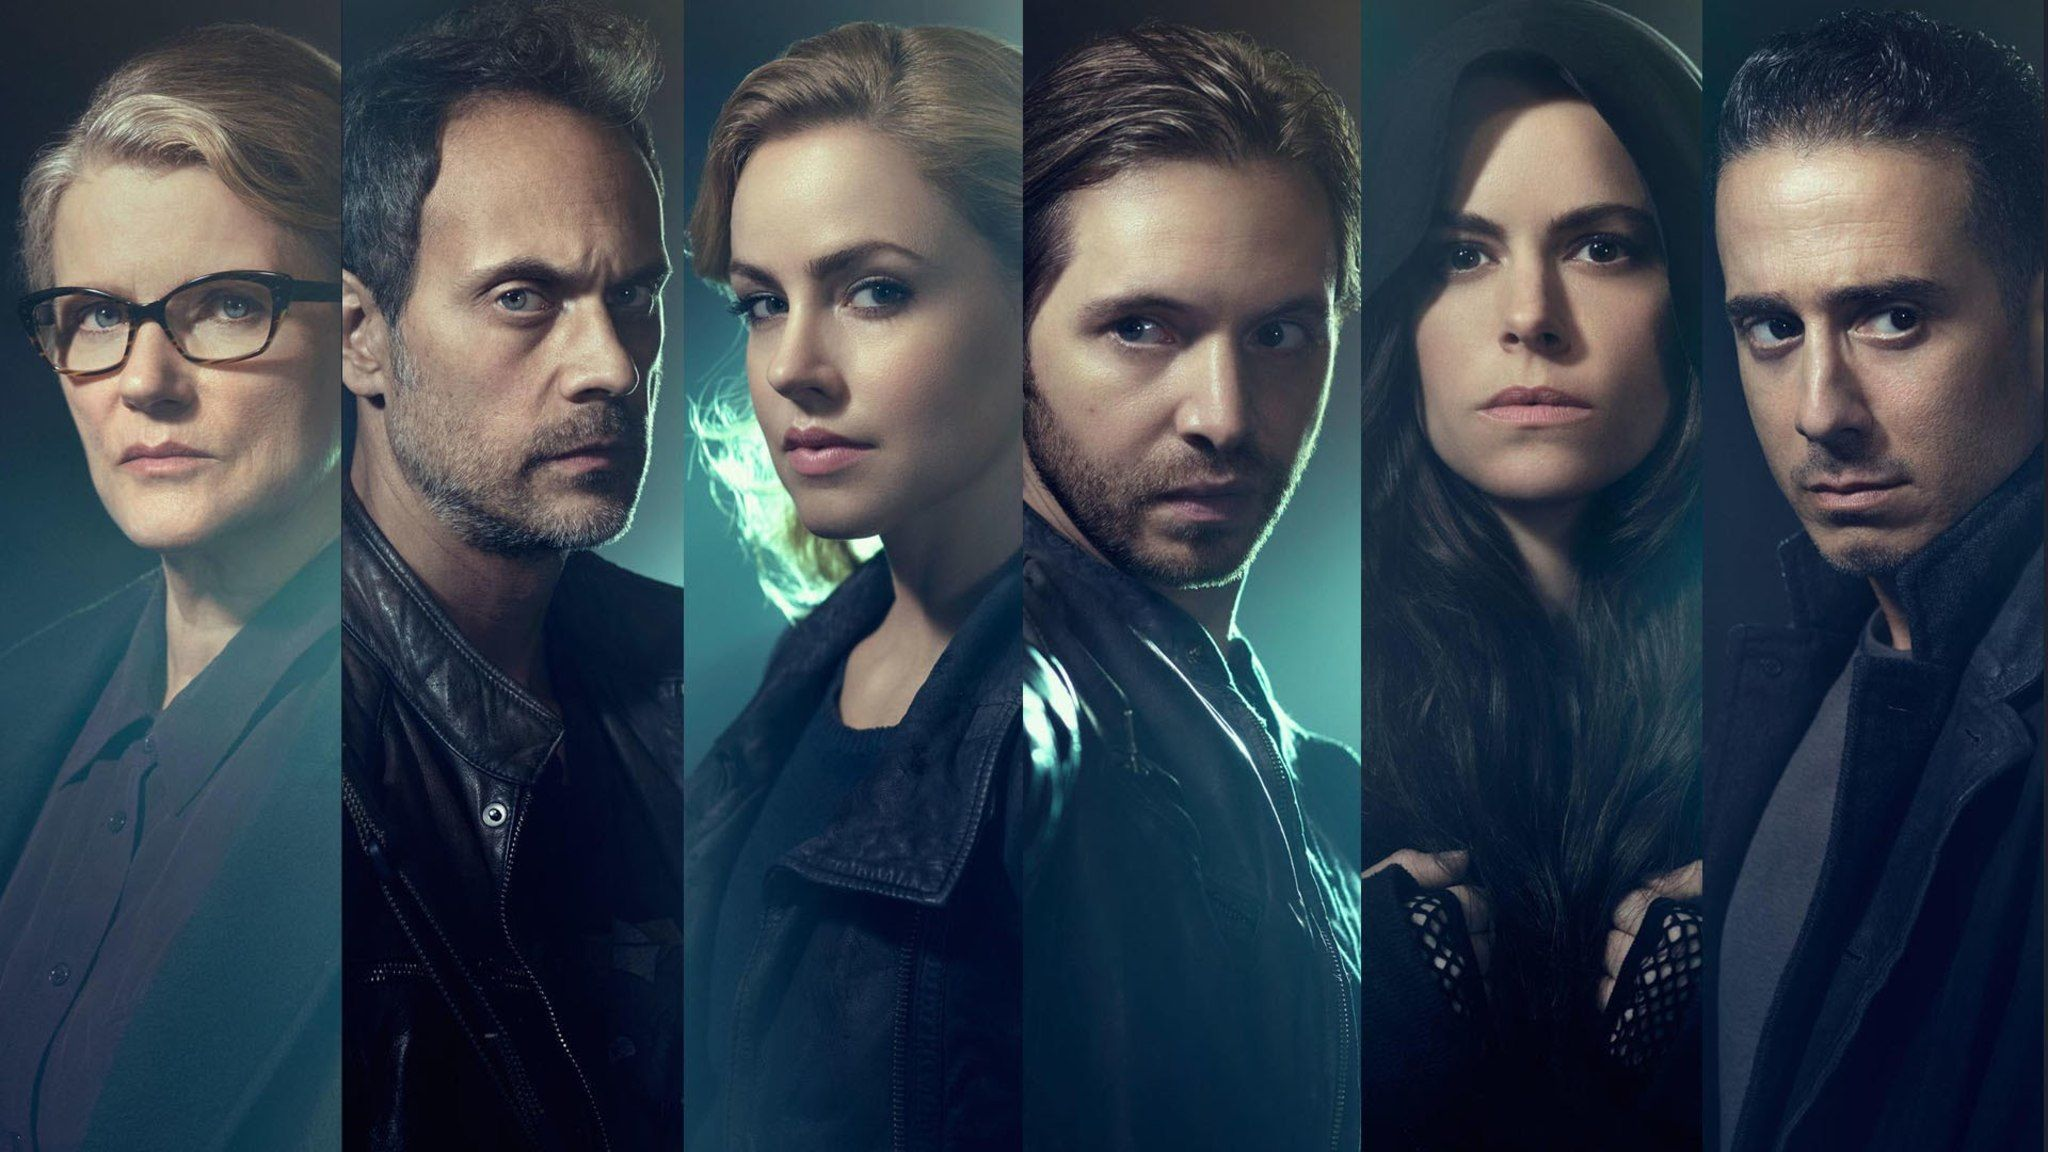 The cast of SyFy's 12 Monkeys. Can the heroes stop the